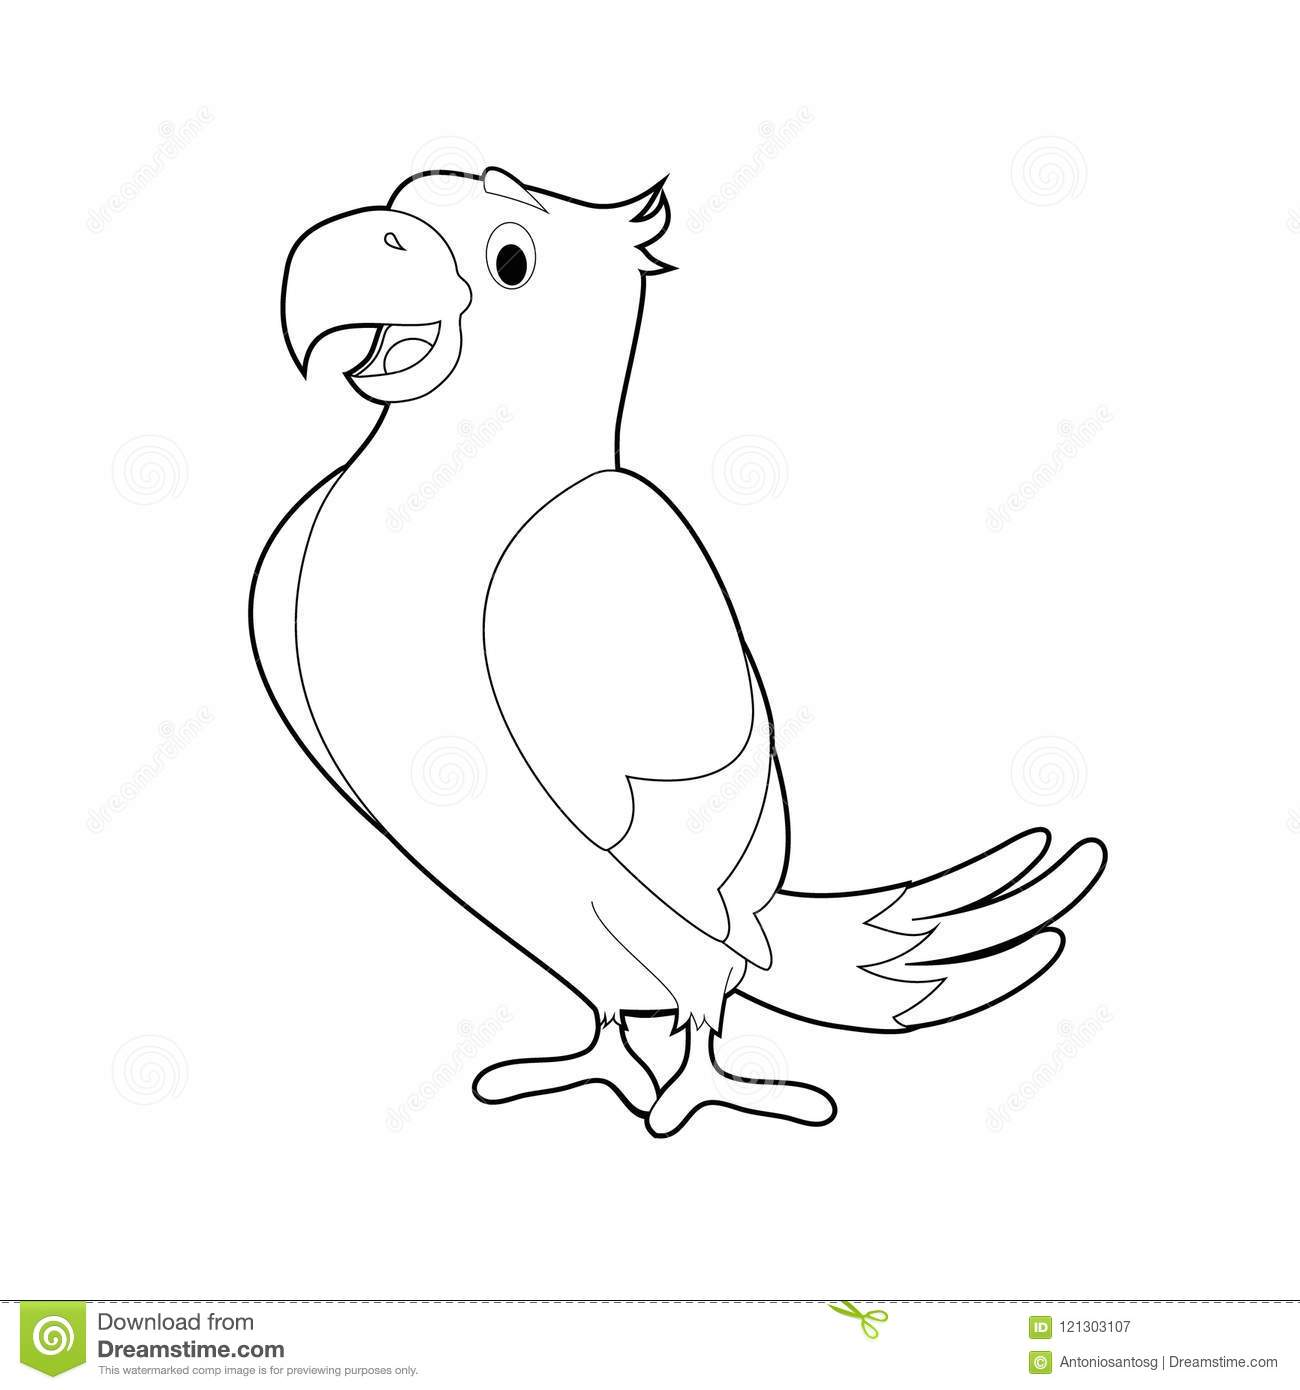 Easy Coloring Animals For Kids Parrot Stock Vector Illustration